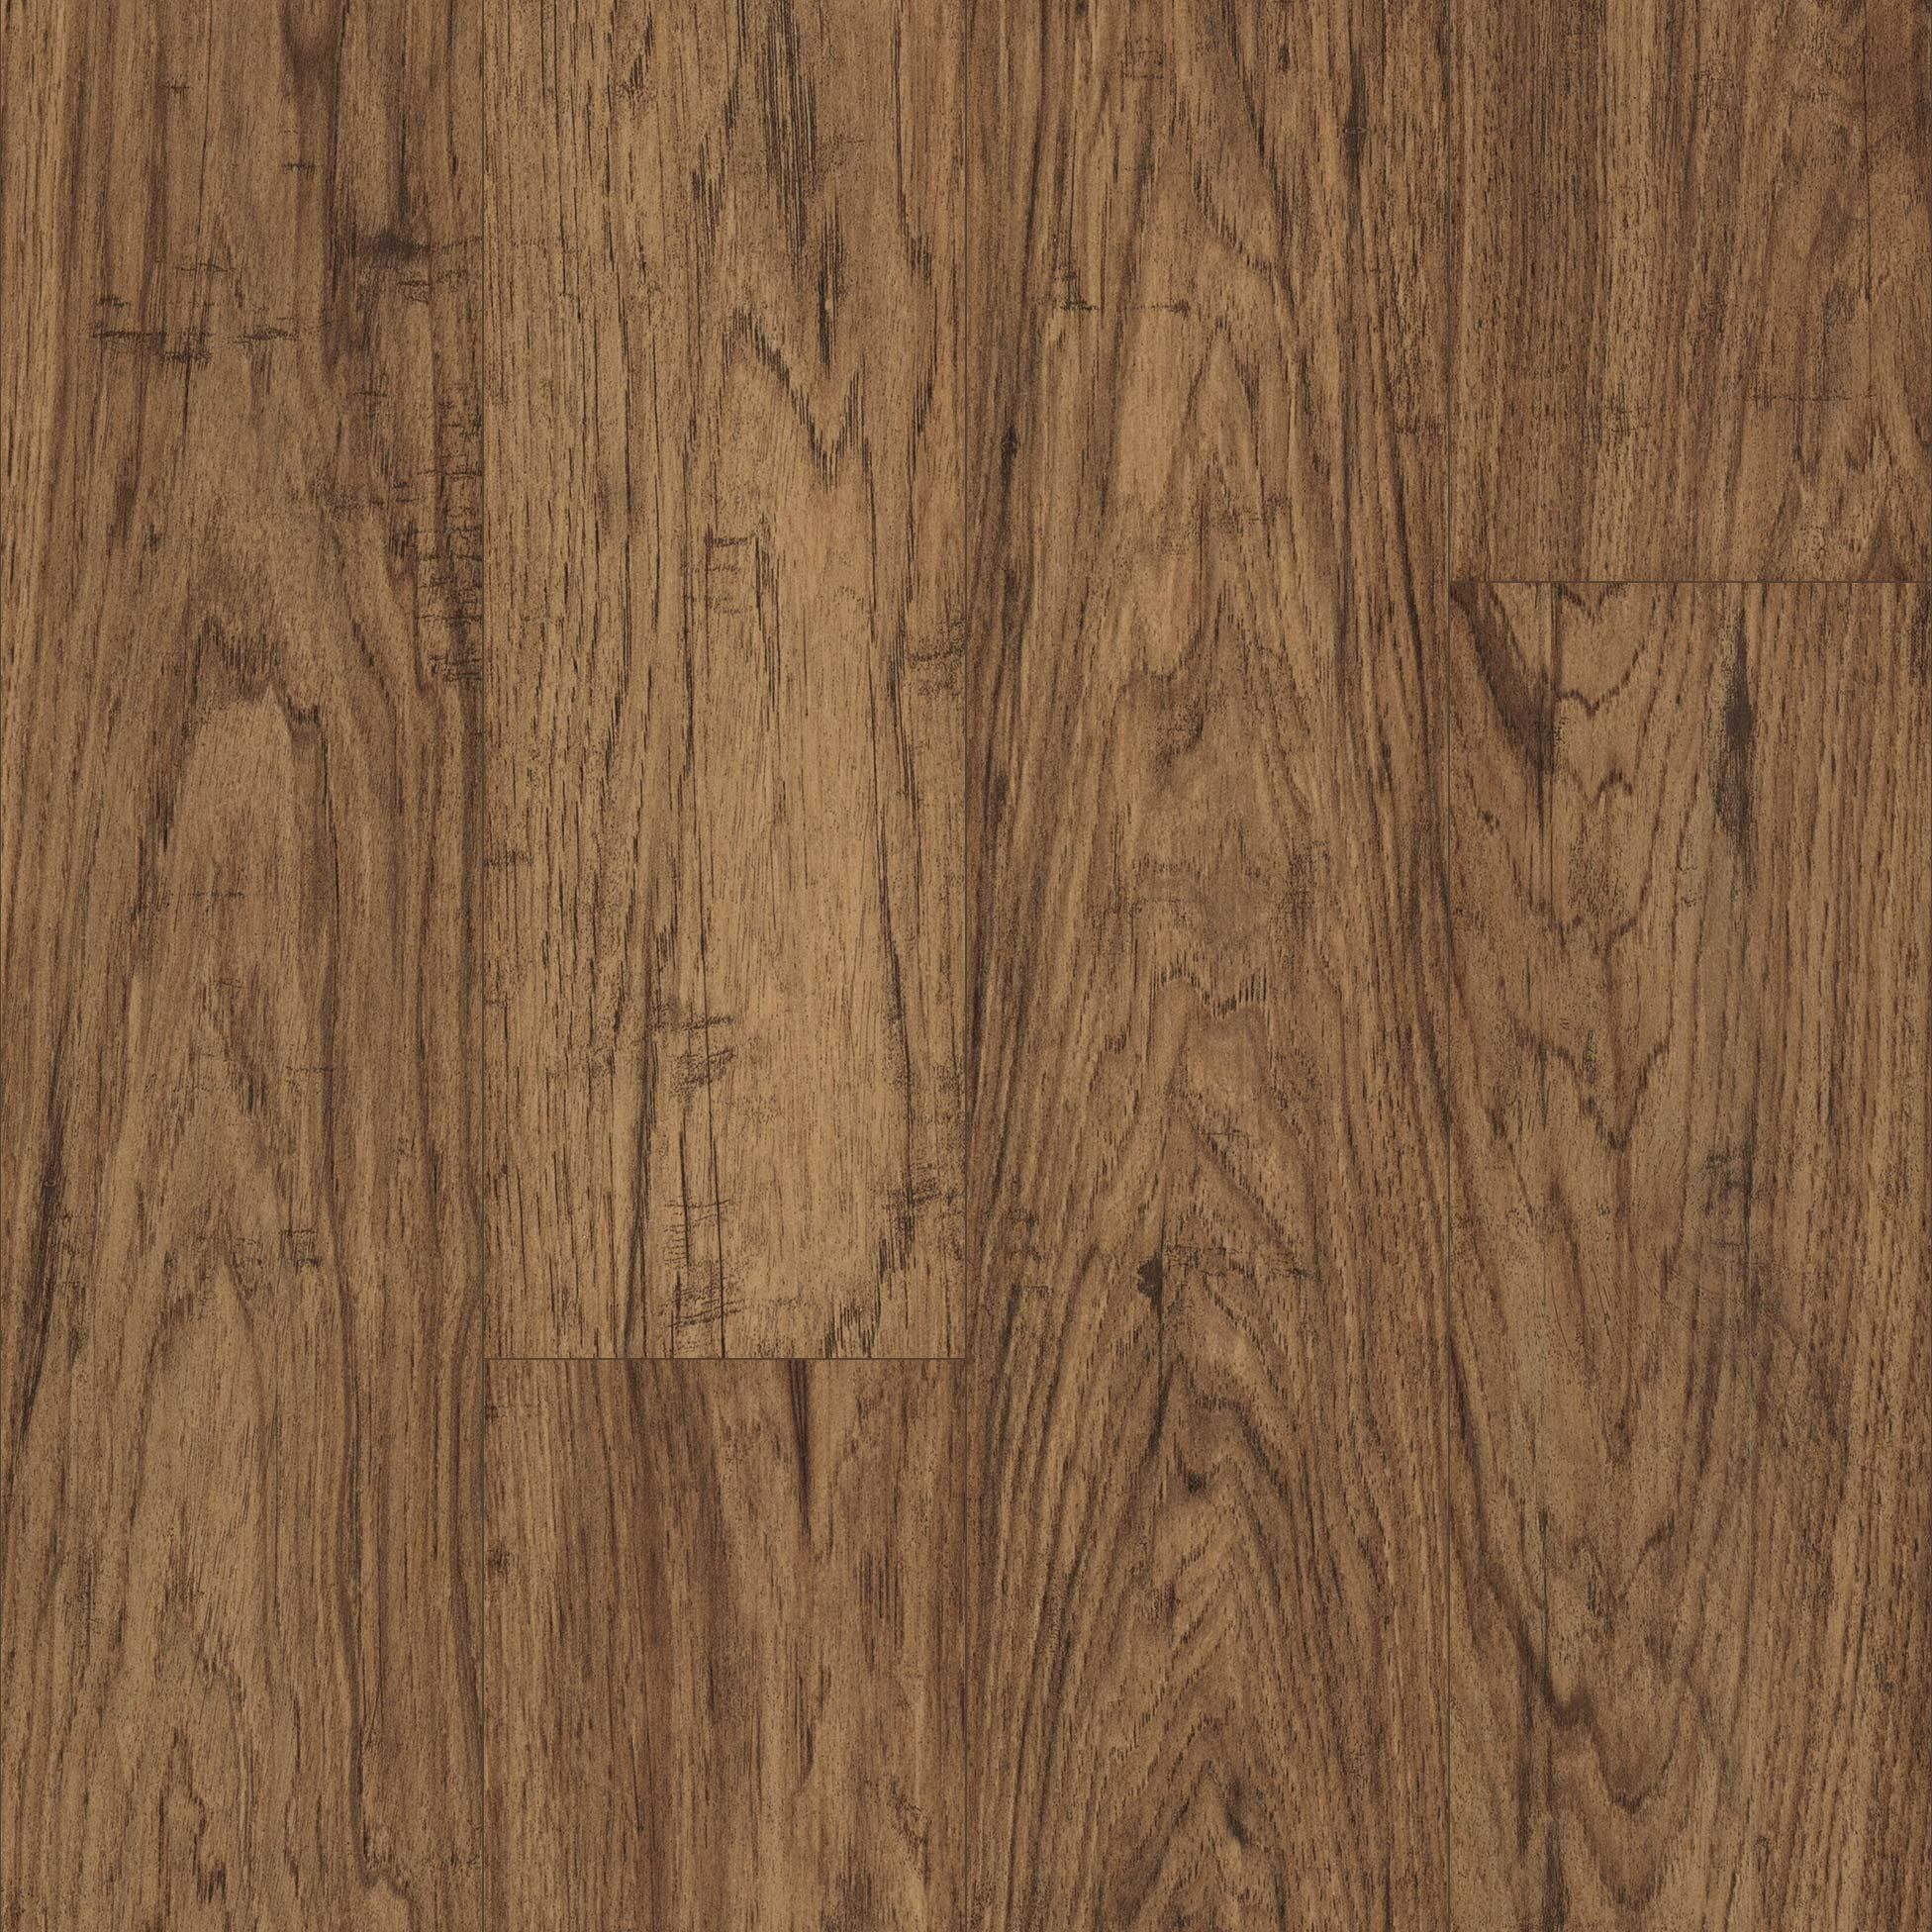 Torlys Ginger Root Hickory 5 Wide 8mm Laminate Flooring With Free Pad Tl39005 Vinyl Plank Vinyl Plank Flooring Plank Flooring